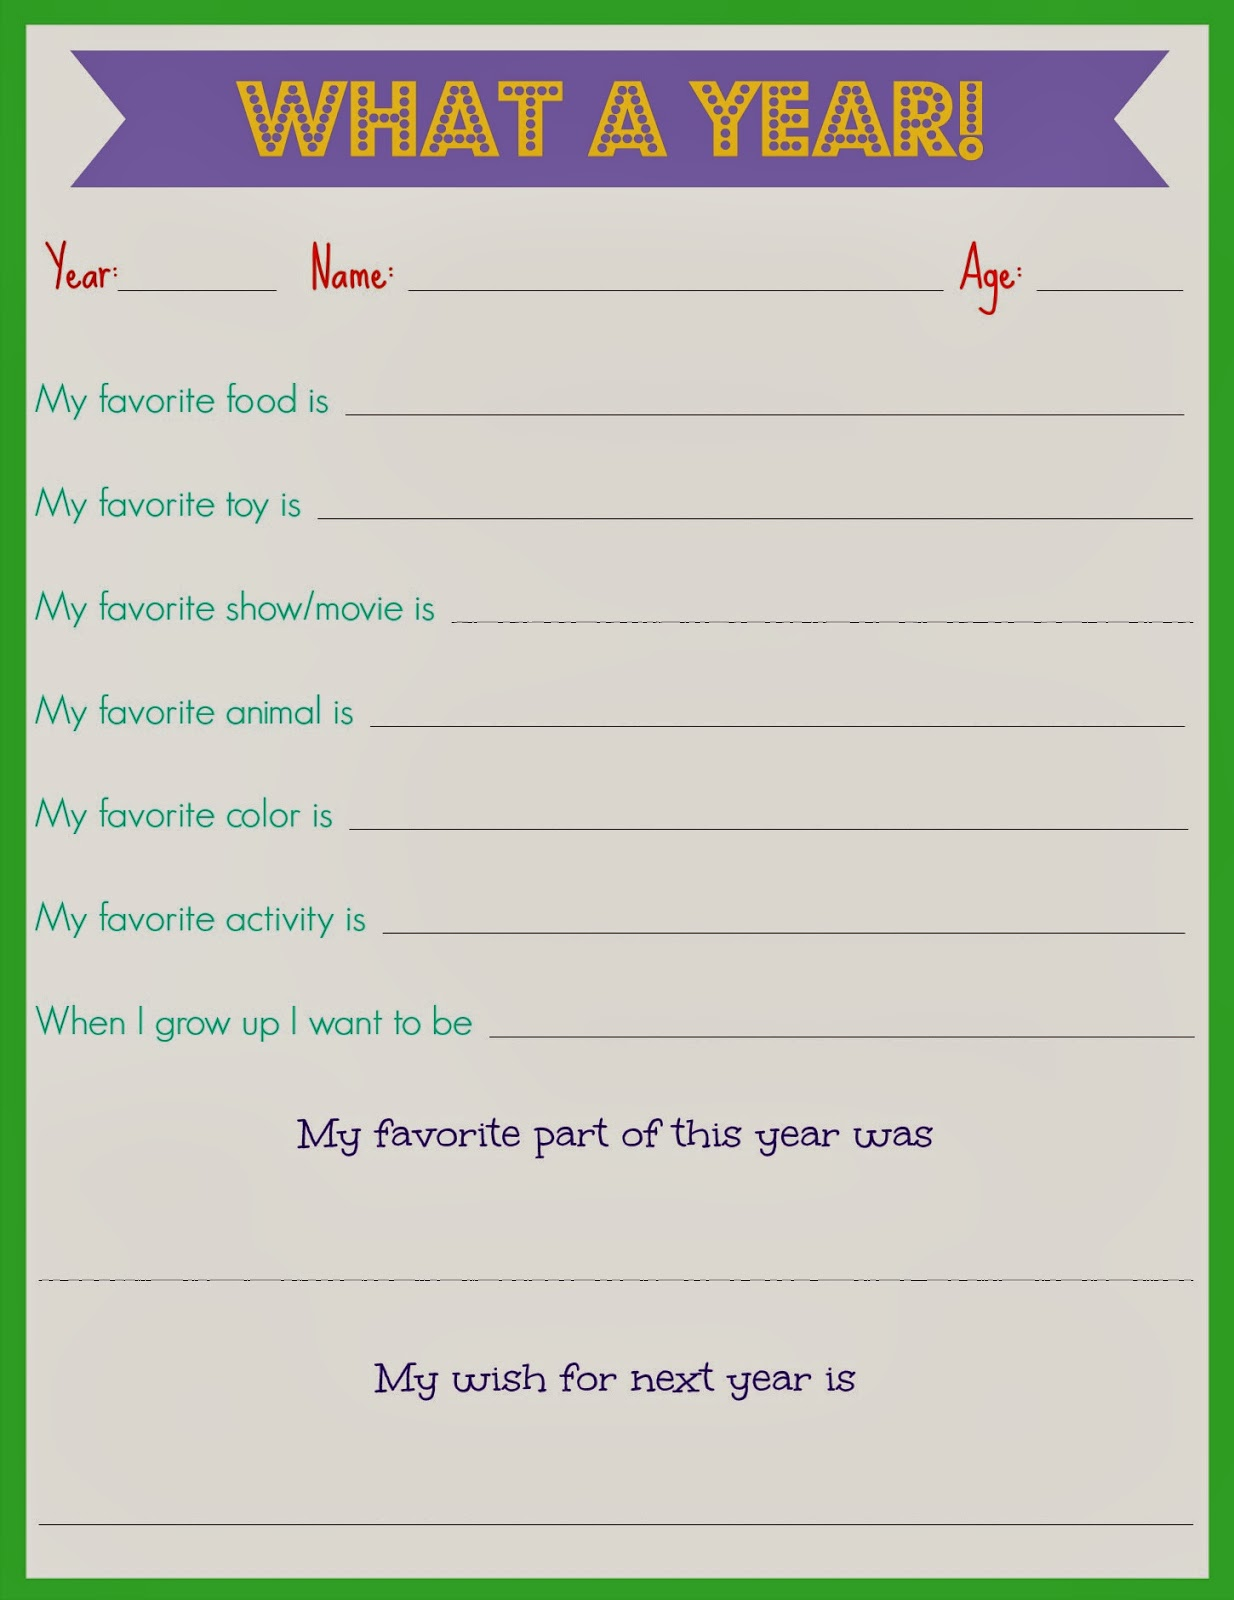 Secret Santa Questionnaire Printable Kids questionnaire for new